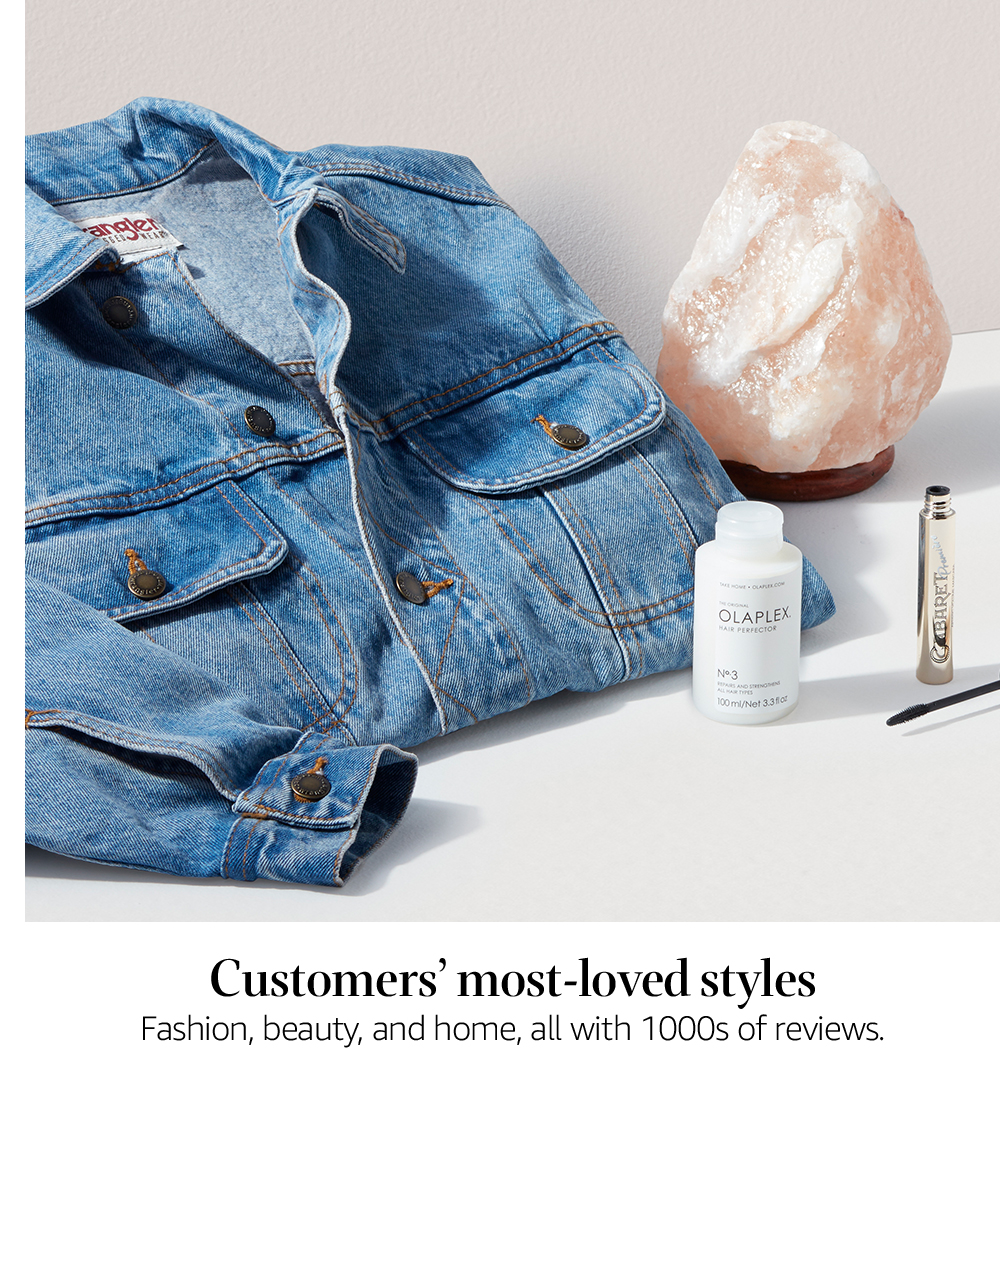 Customers' most-loved styles